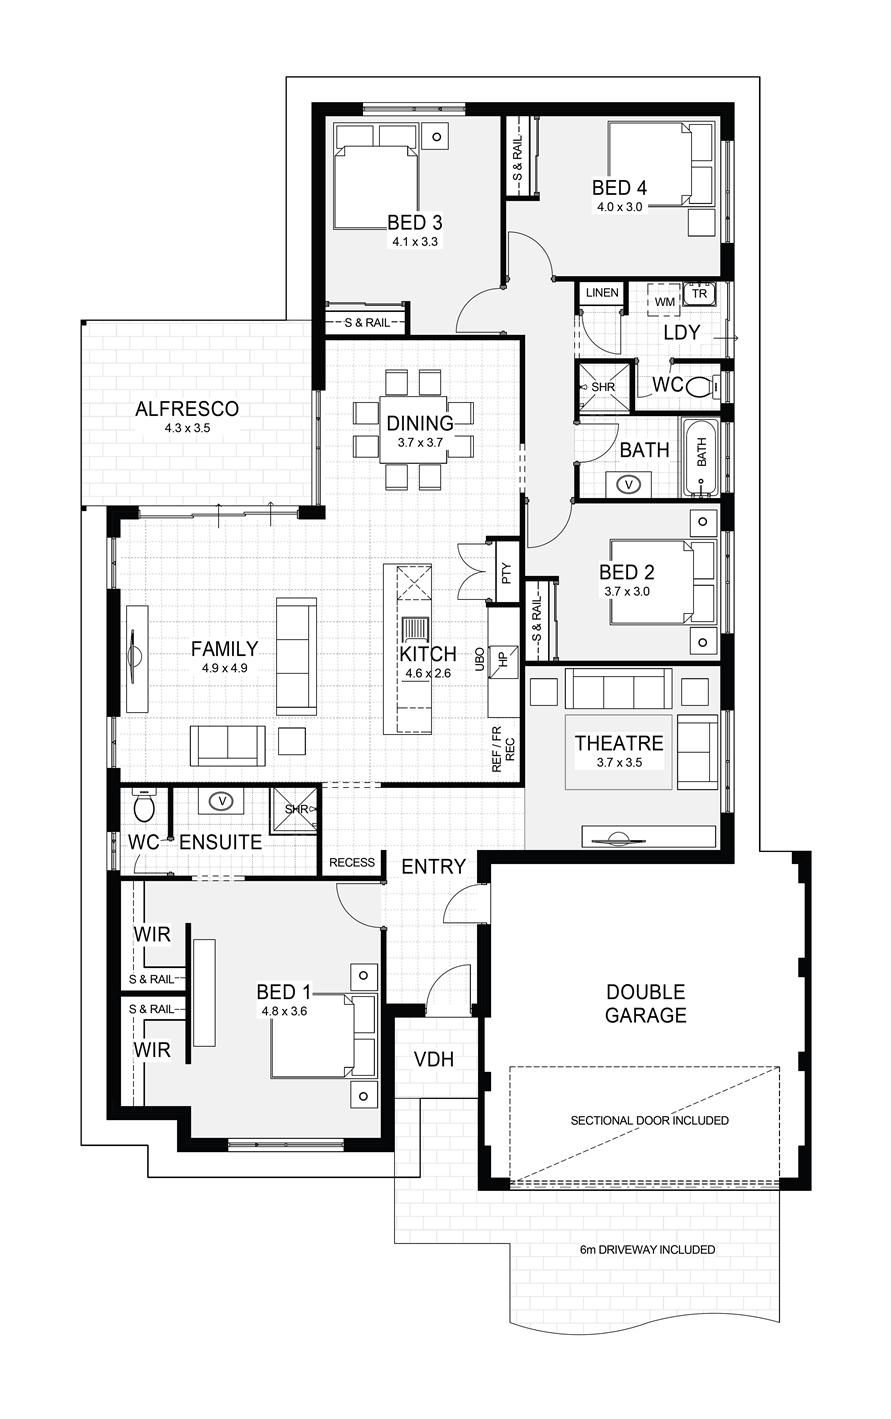 House Plans In Wa Home Design And Style